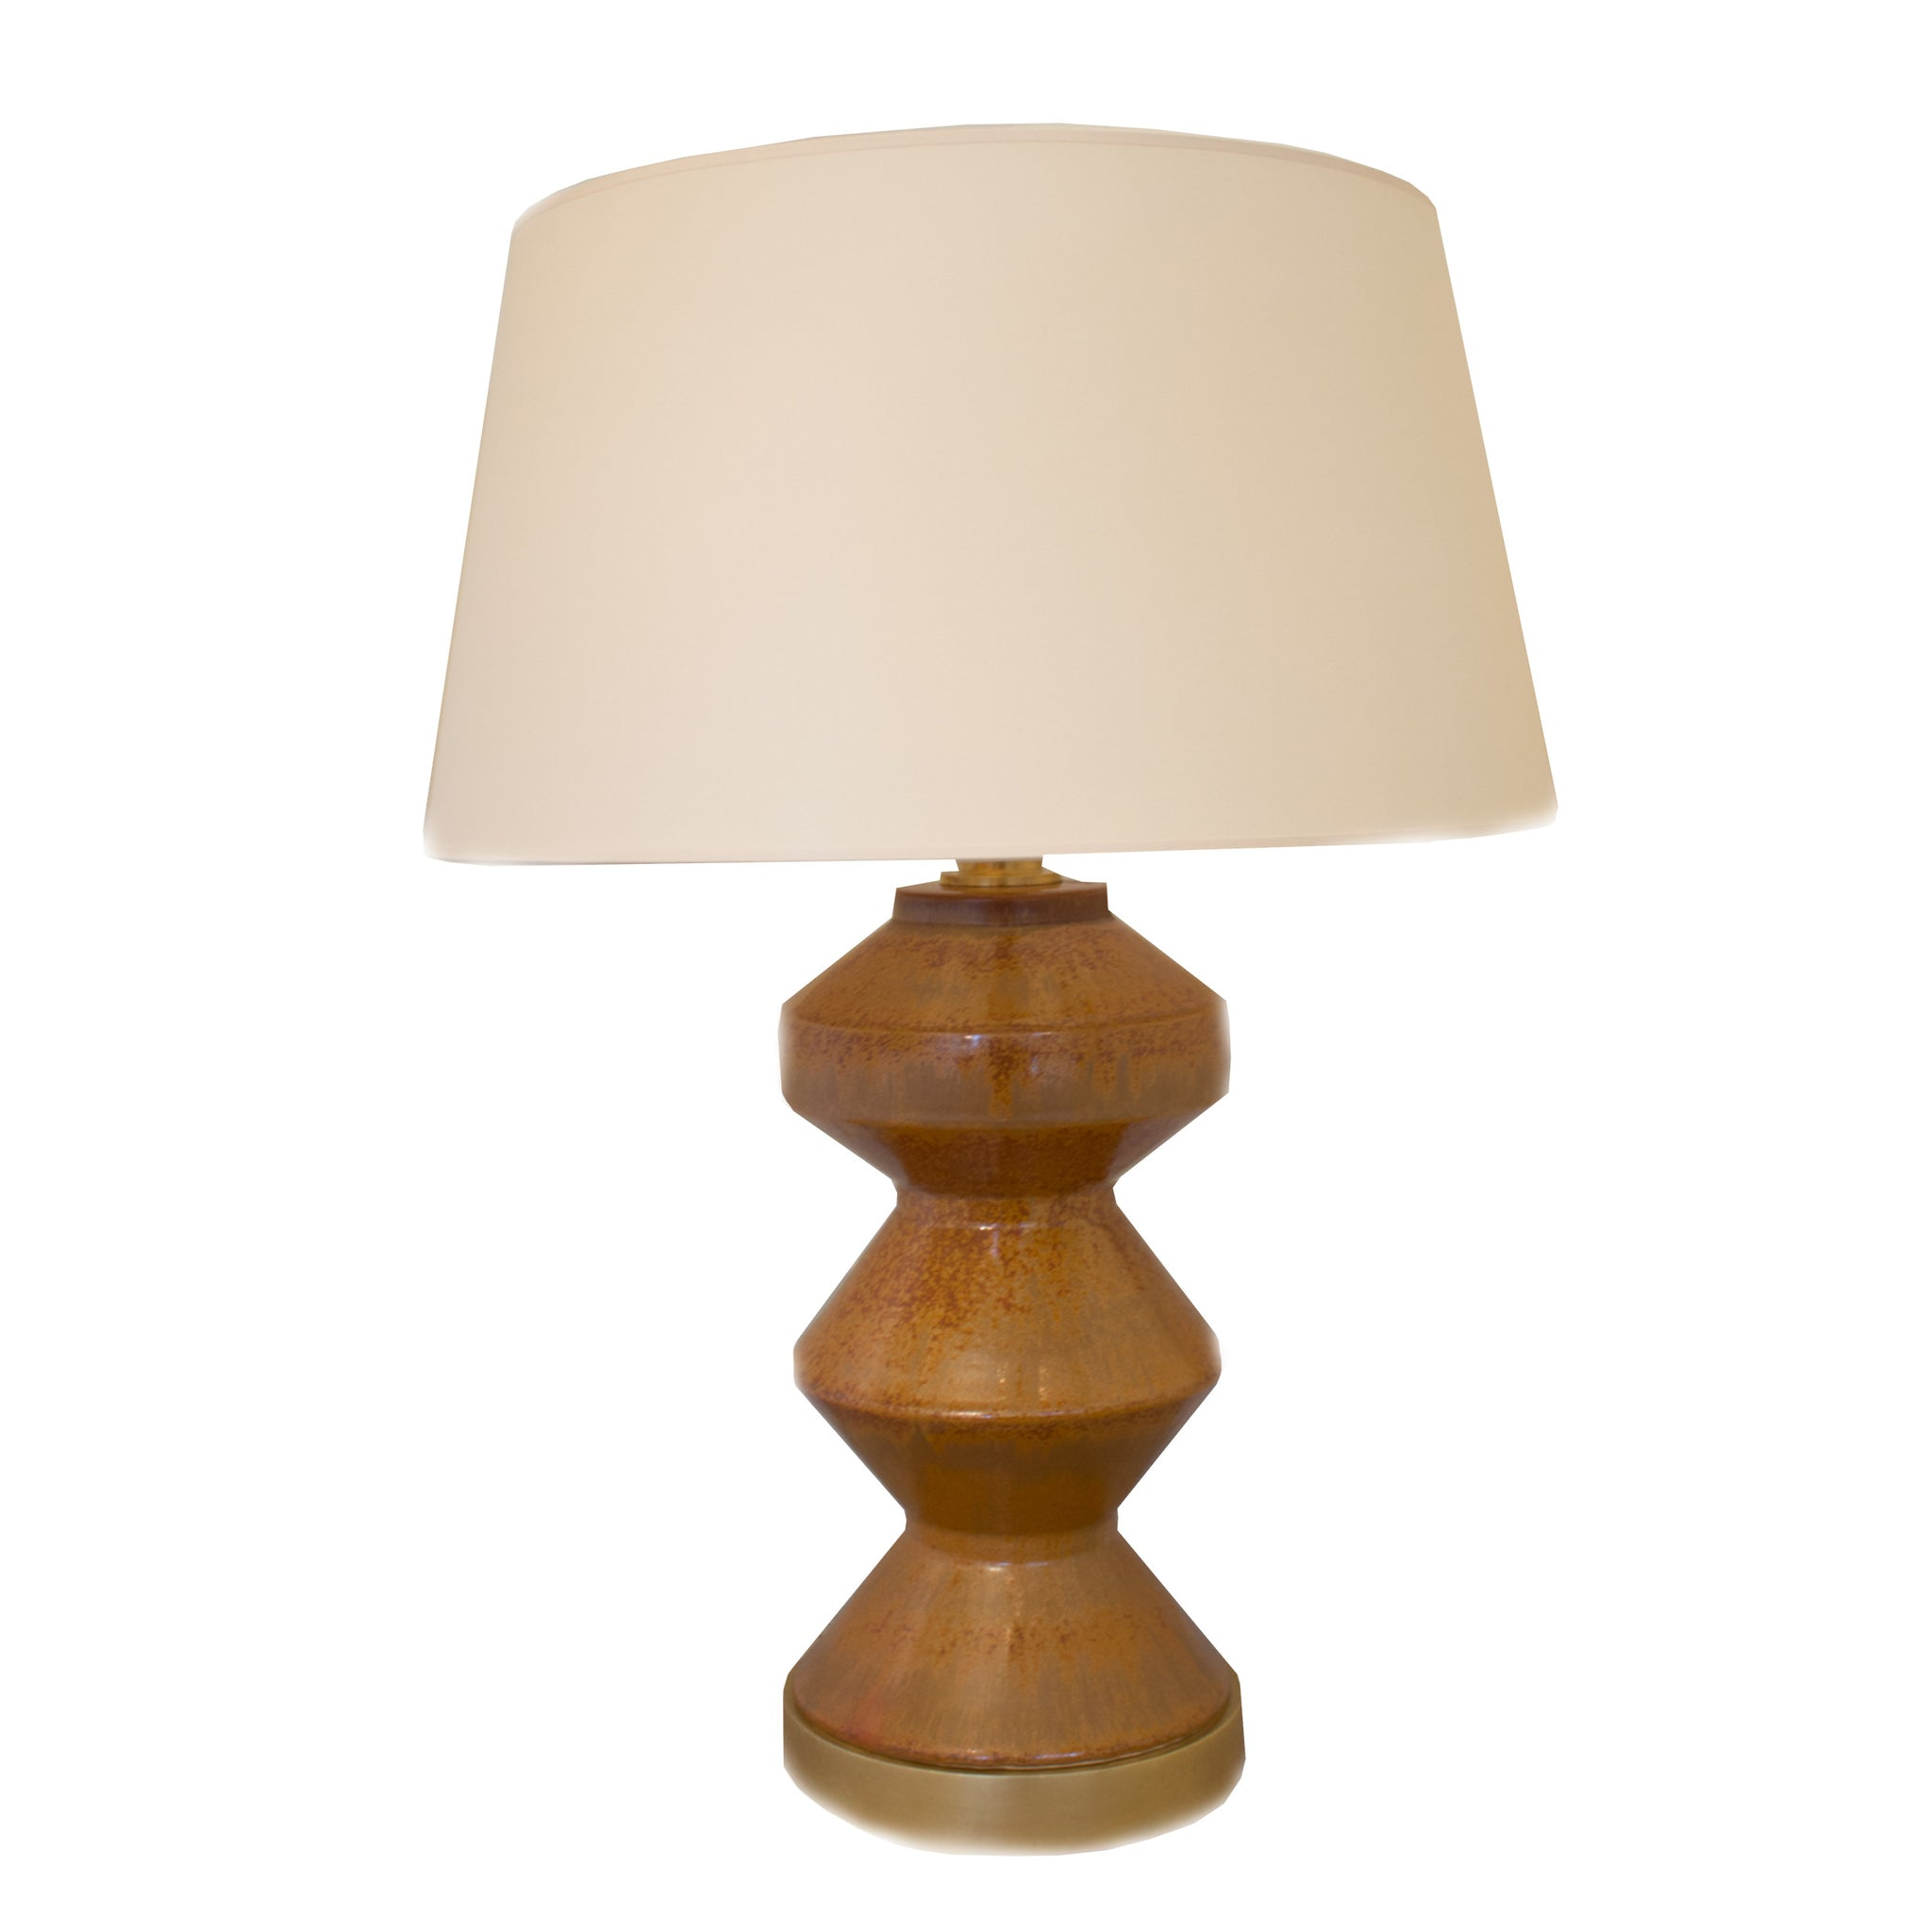 Weller Zig Zag Table Lamp in Shanghai Brown with Natural Paper Shade